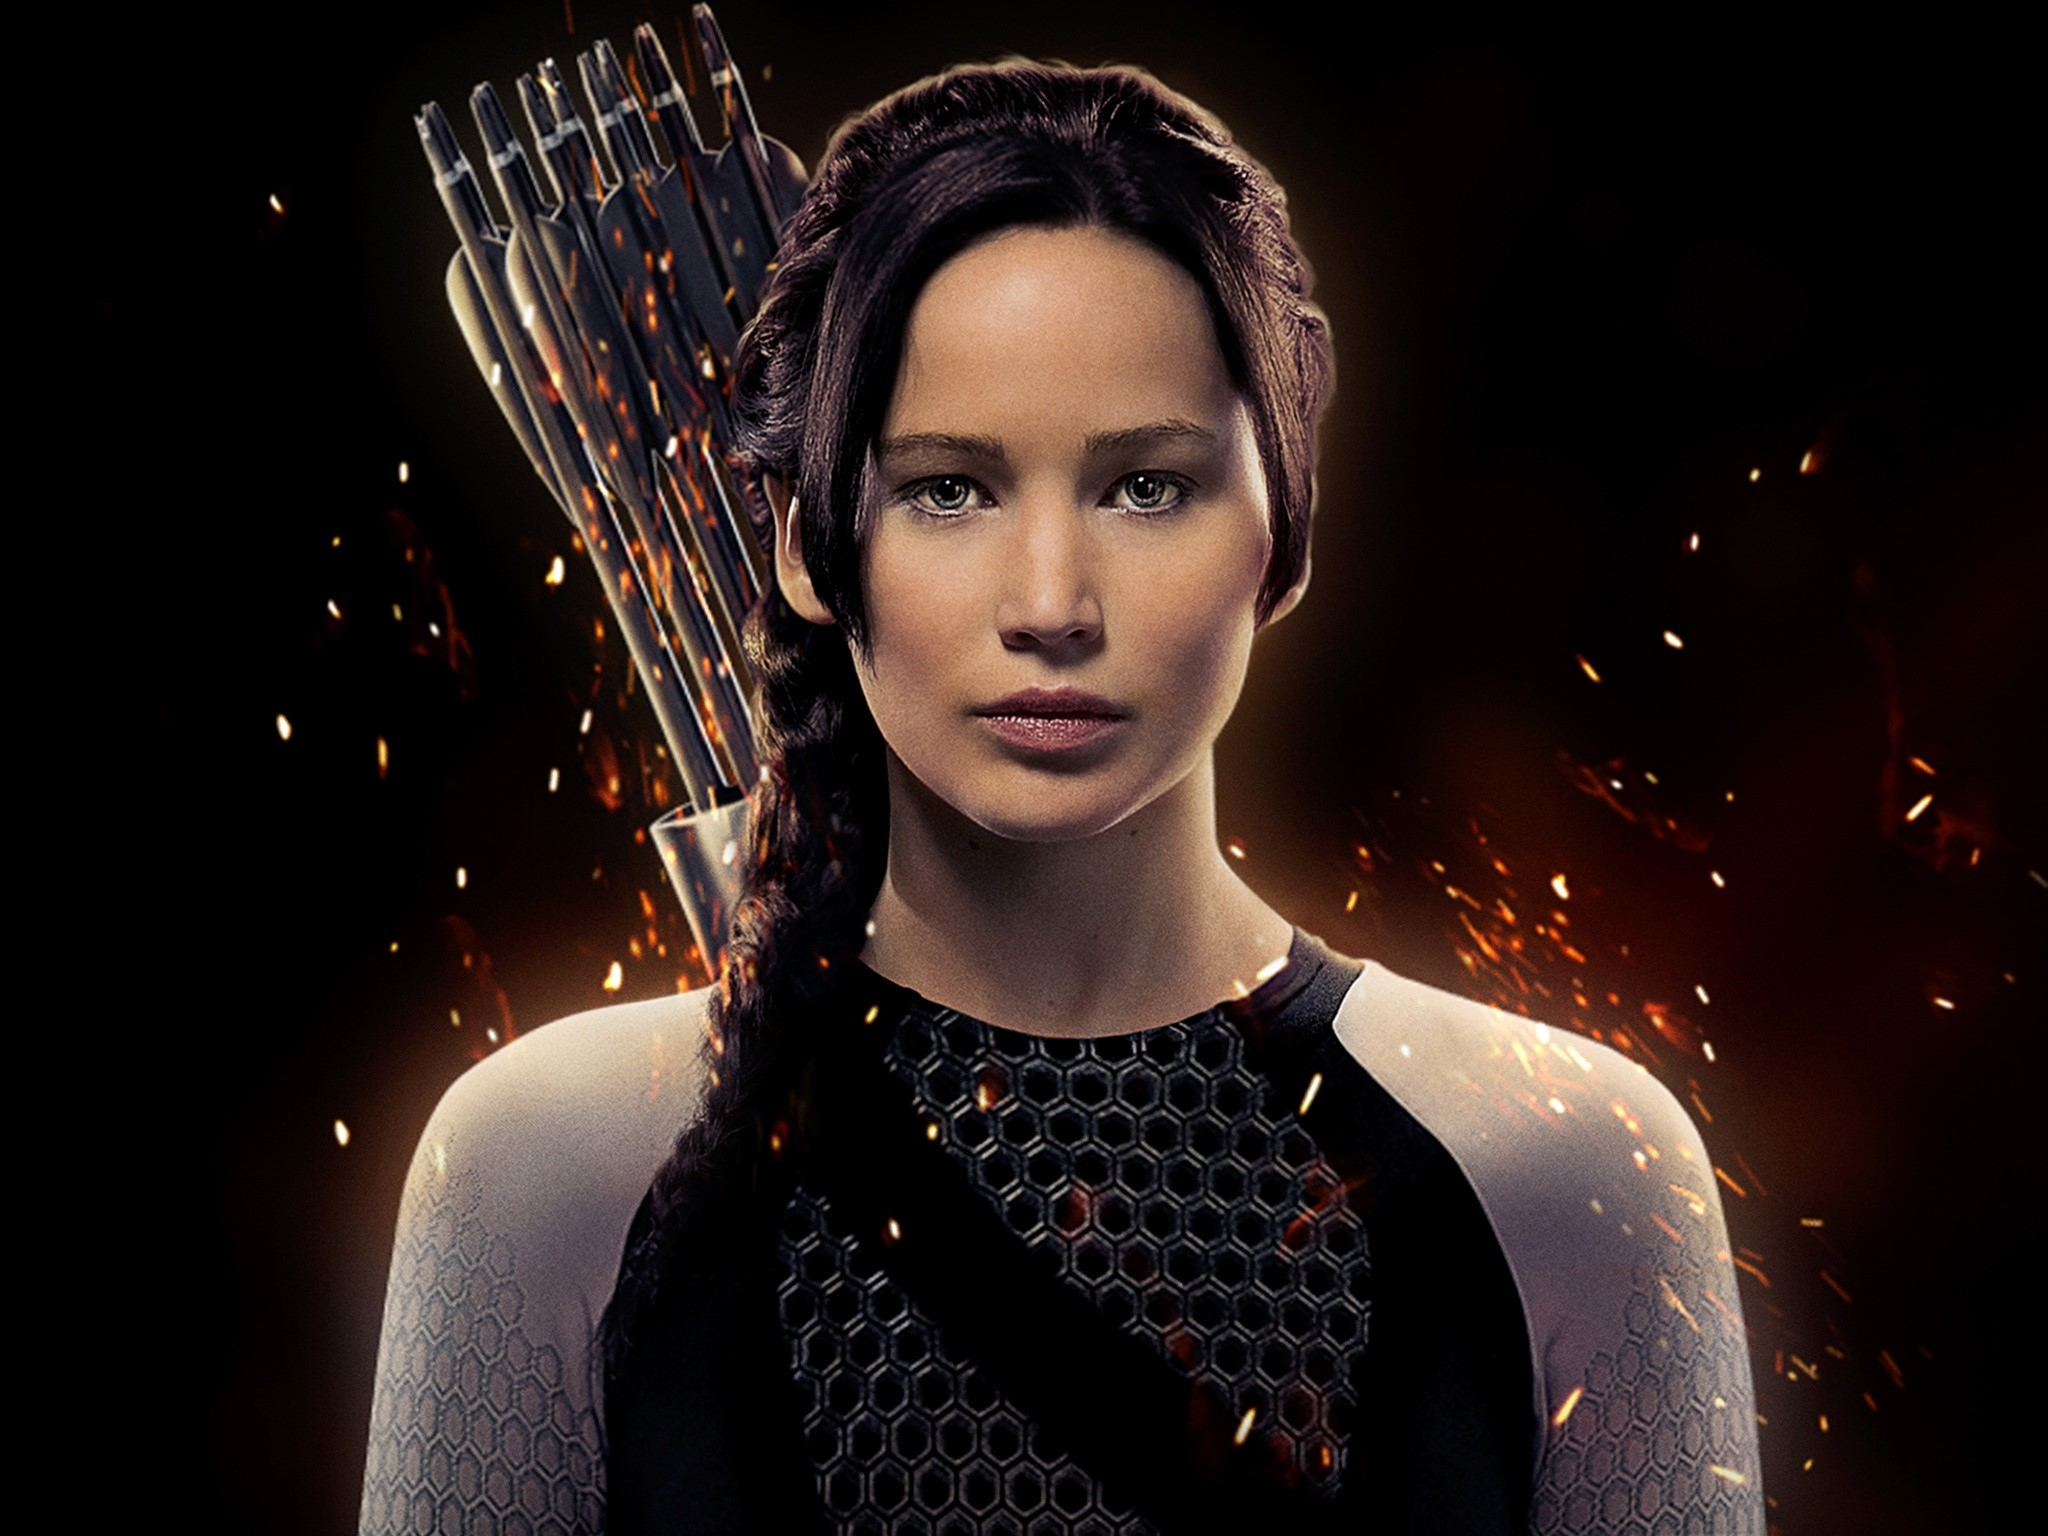 Fondos de pantalla Jennifer lawrence as katniss